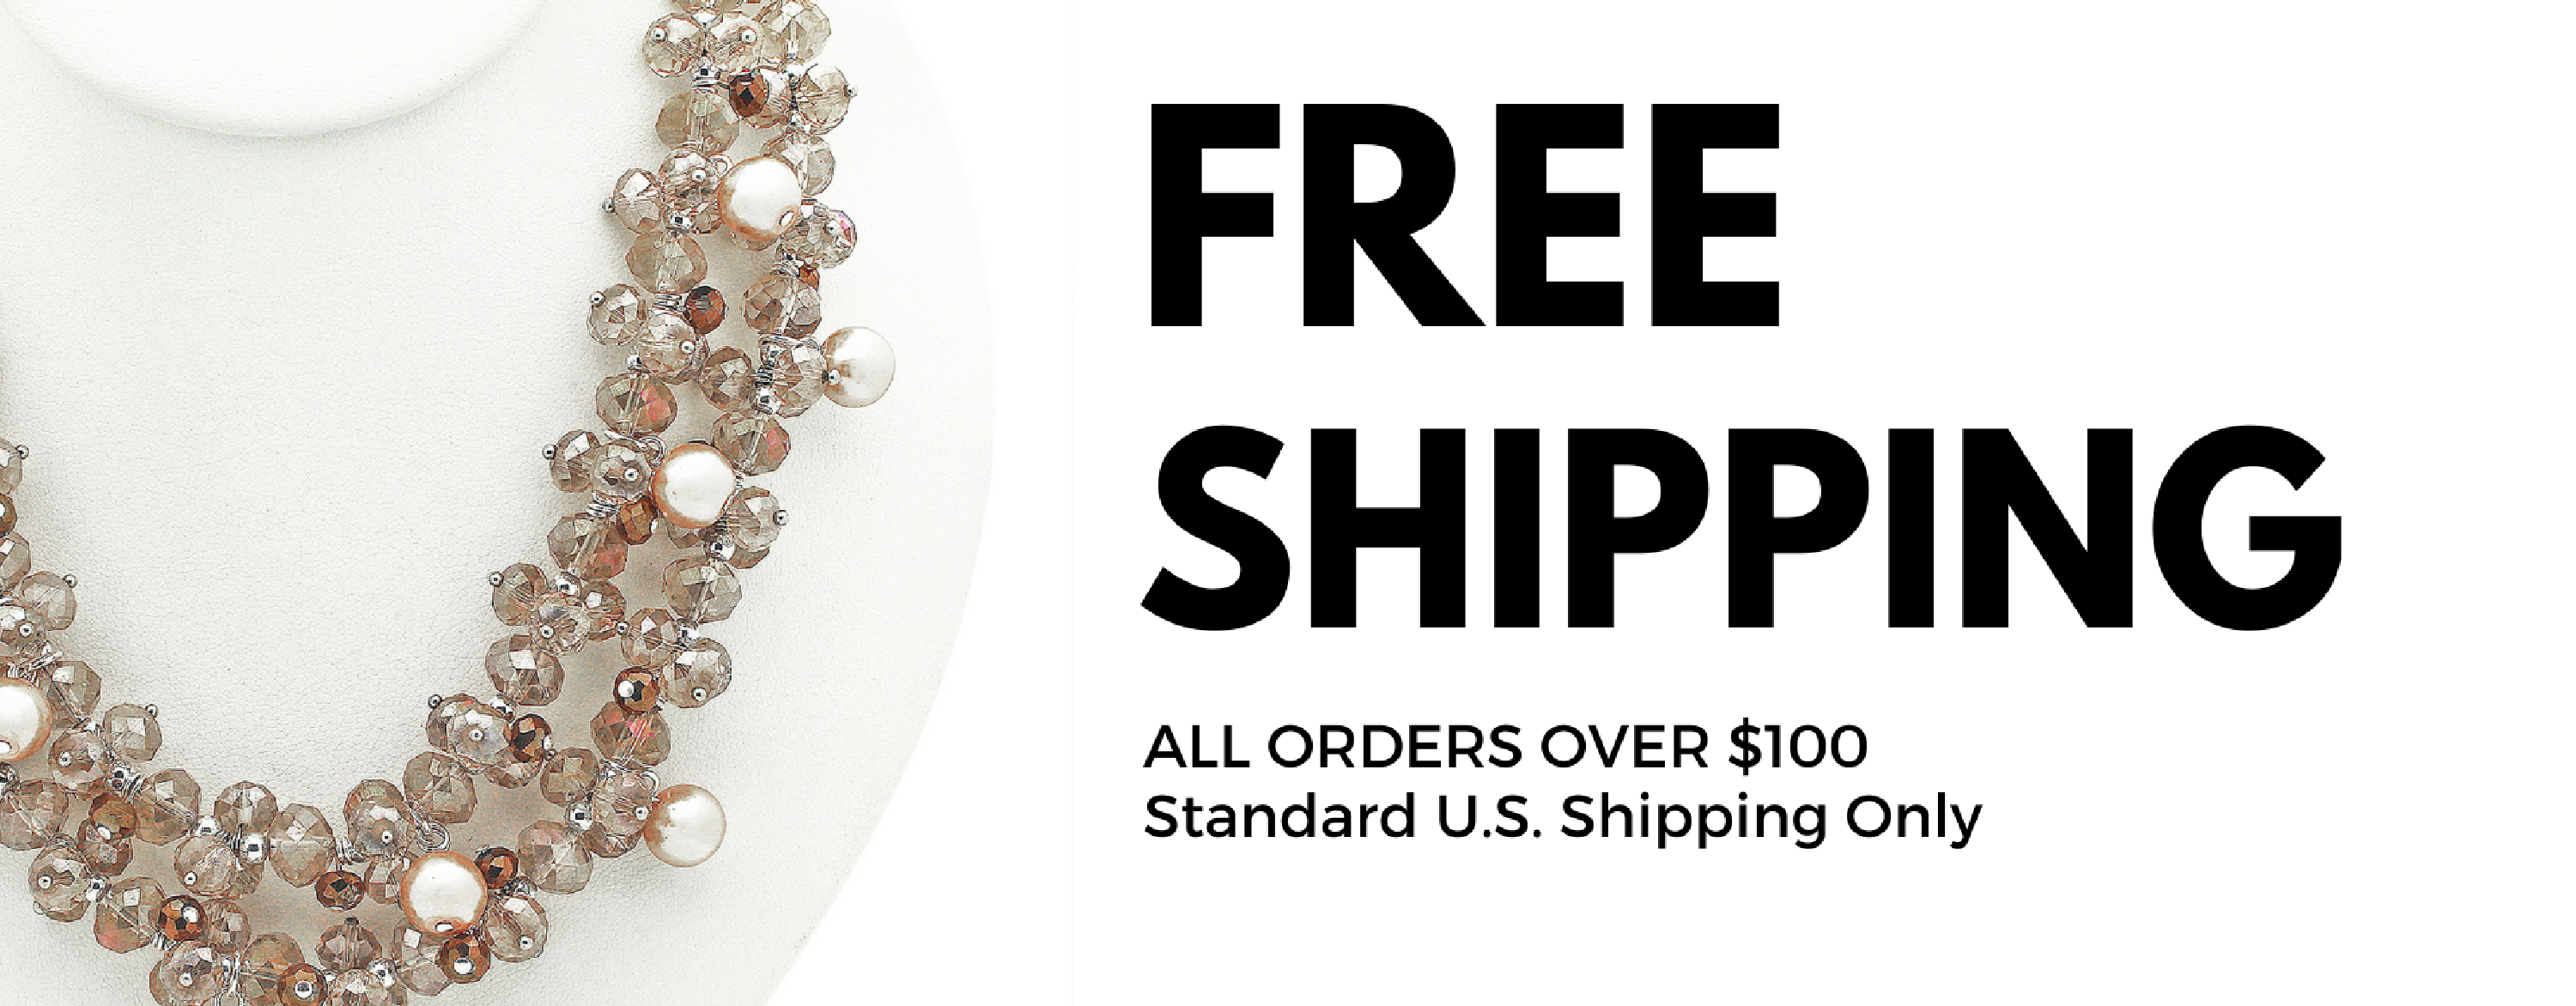 FREE-SHIPPING-BANNER-4